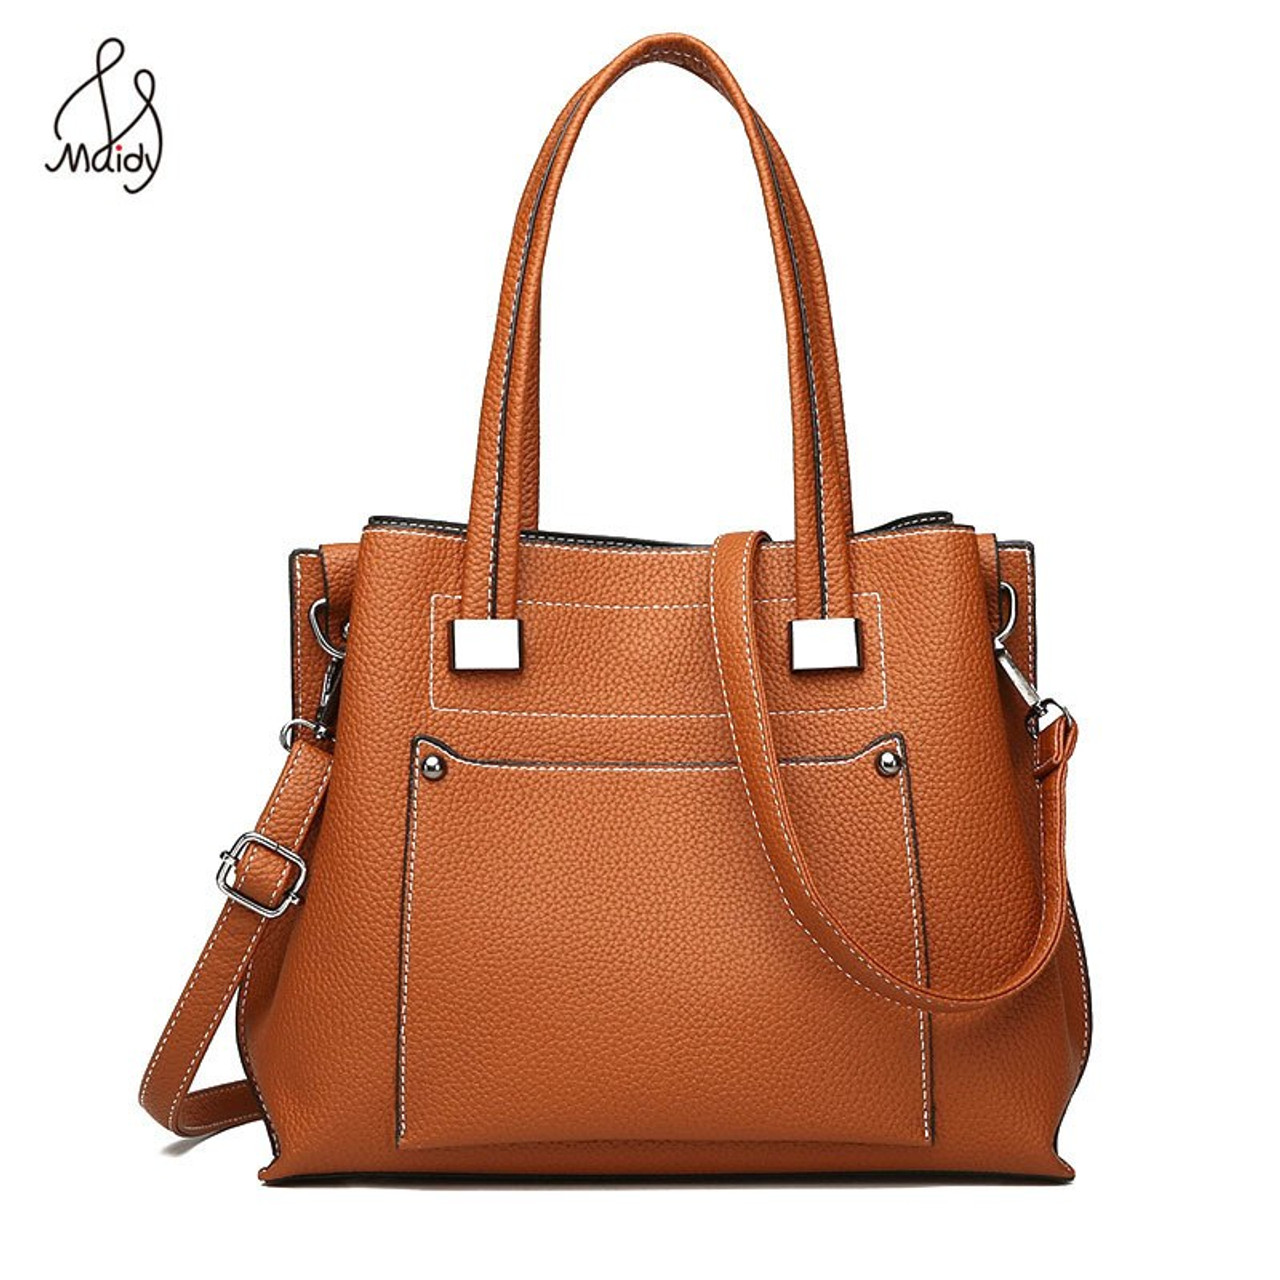 527fb2248b ... Luxury Handbags Women Bags Designer Lady Leather Large Soft Capacity  Casual Tote Shoulder Crossbody Messenger Brand ...